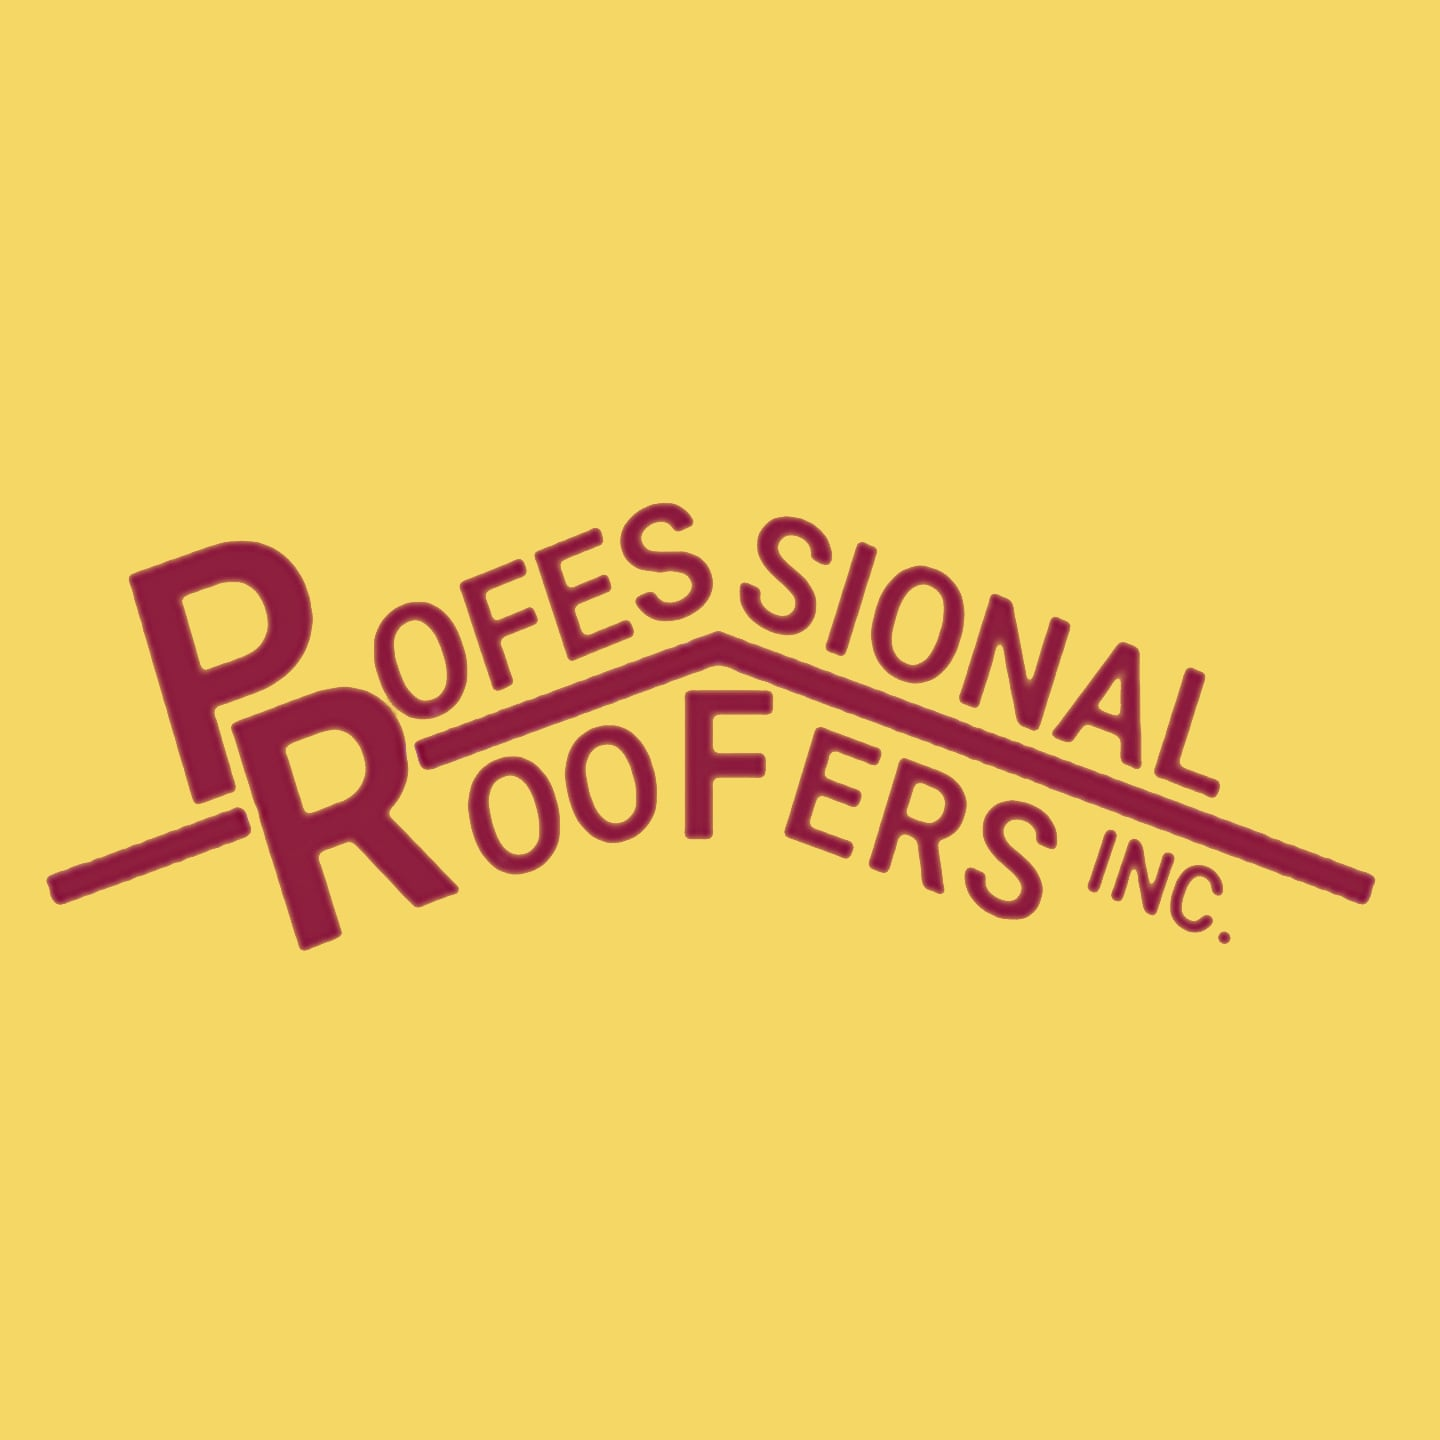 Professional Roofers Inc